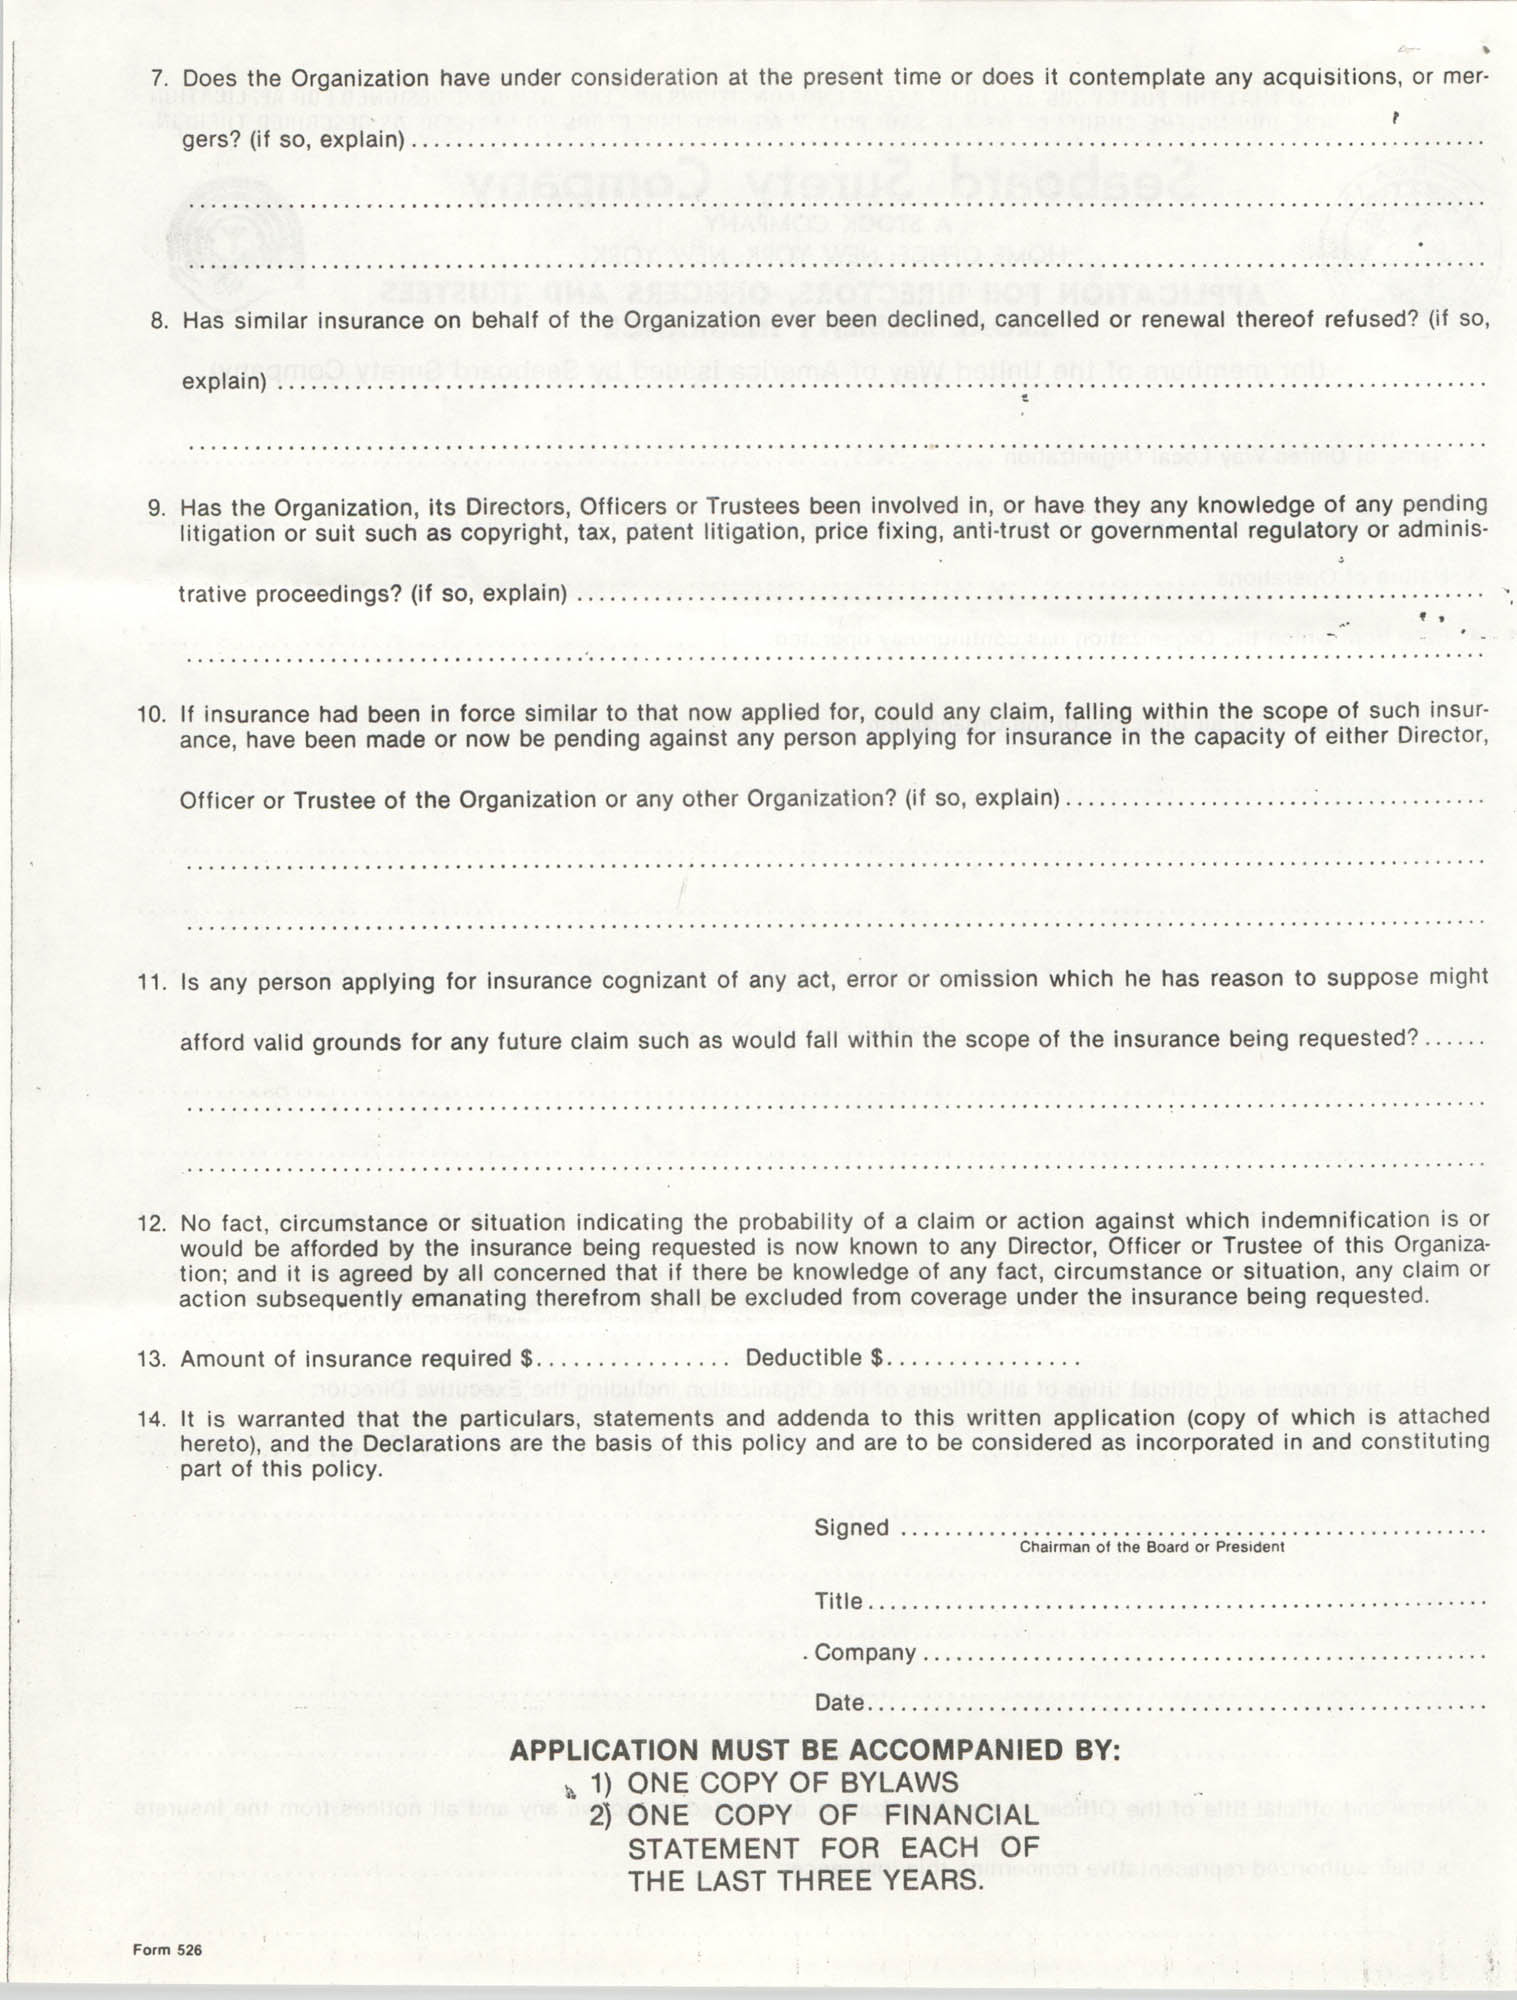 Seaboard Surety Company Legal Liability Insurance Application, Page 2